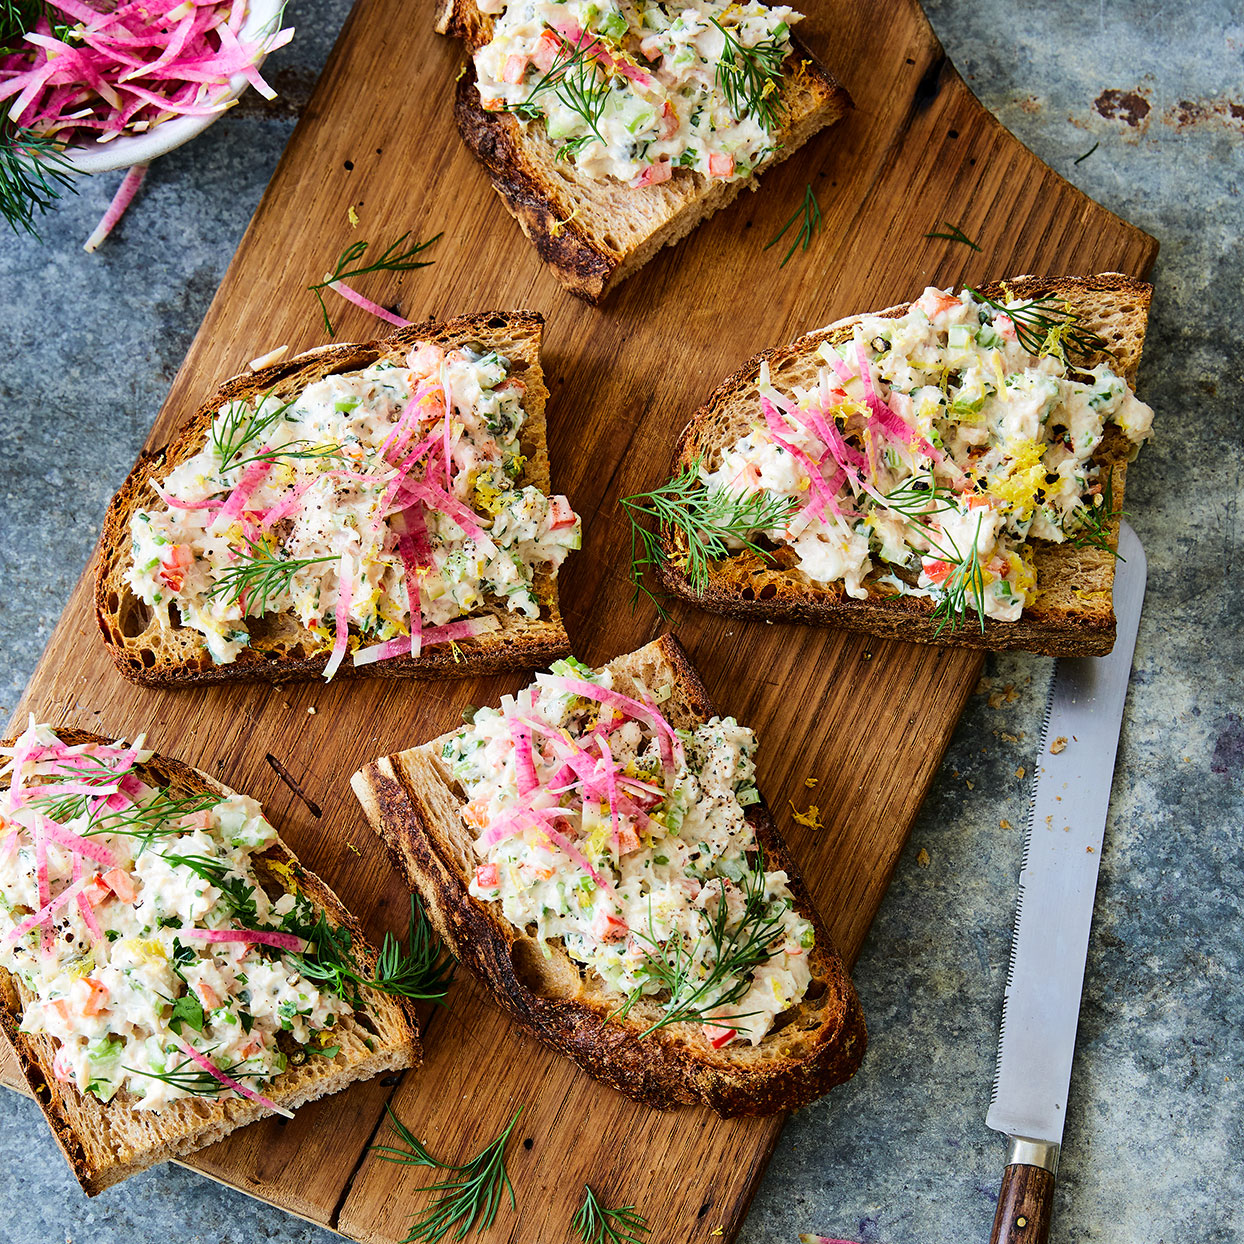 Serve this chunky smoked whitefish salad from chef Judi Barsness on toasted crusty bread, on crackers or mounded over a bed of salad greens. Source: EatingWell Magazine, June 2020